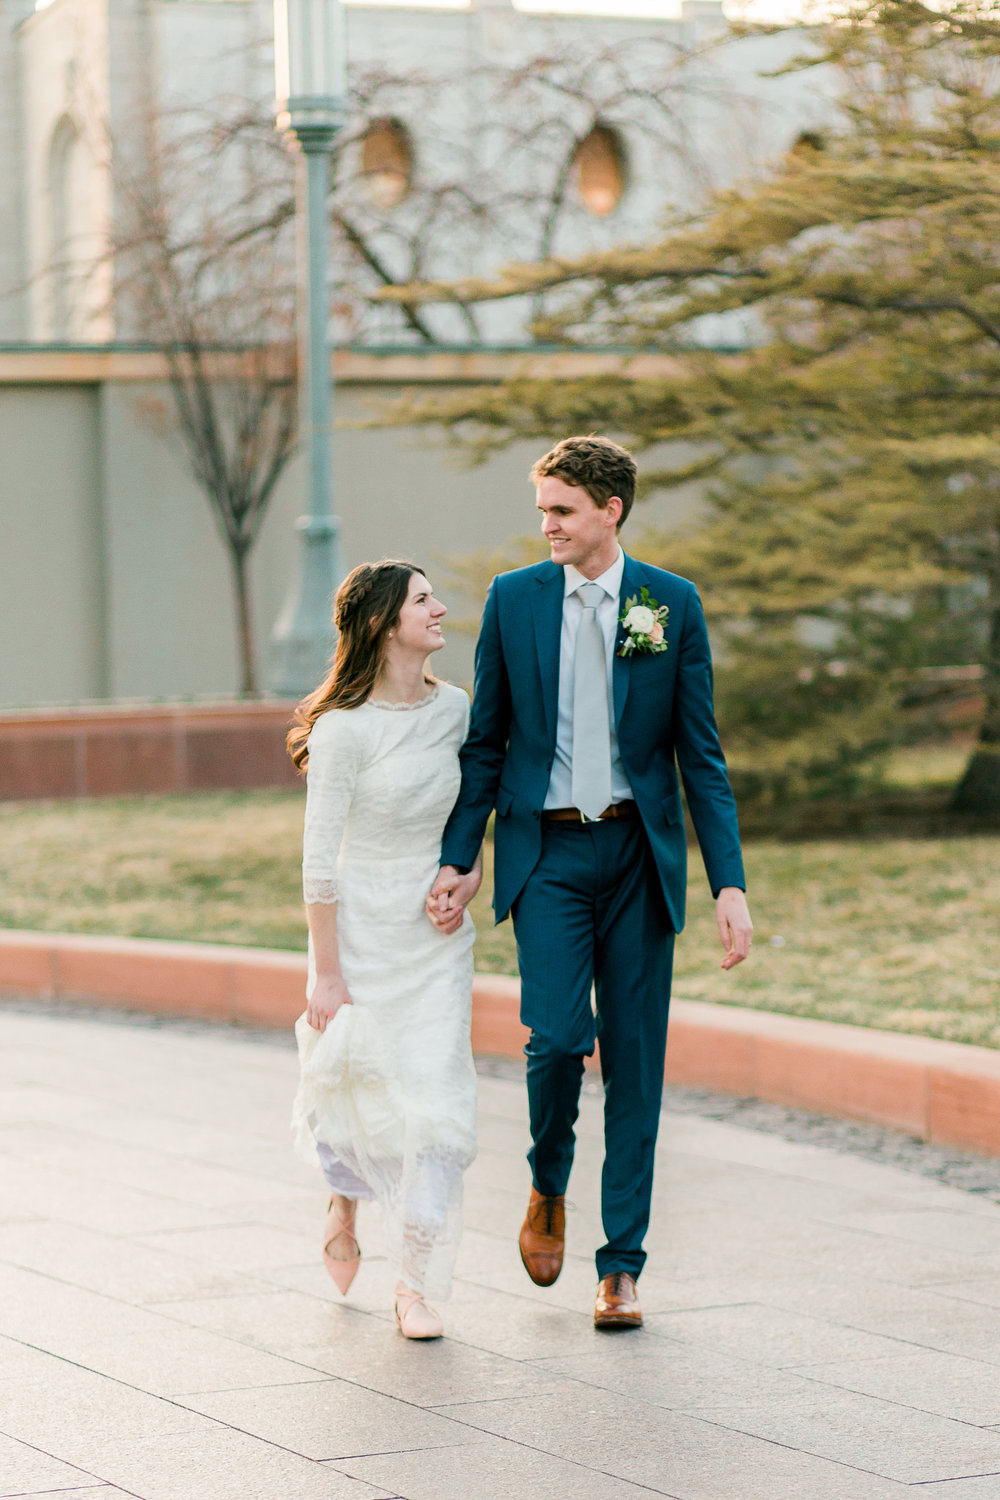 Eliza + Cody Bridals - Utah Wedding Photographer-61.jpg